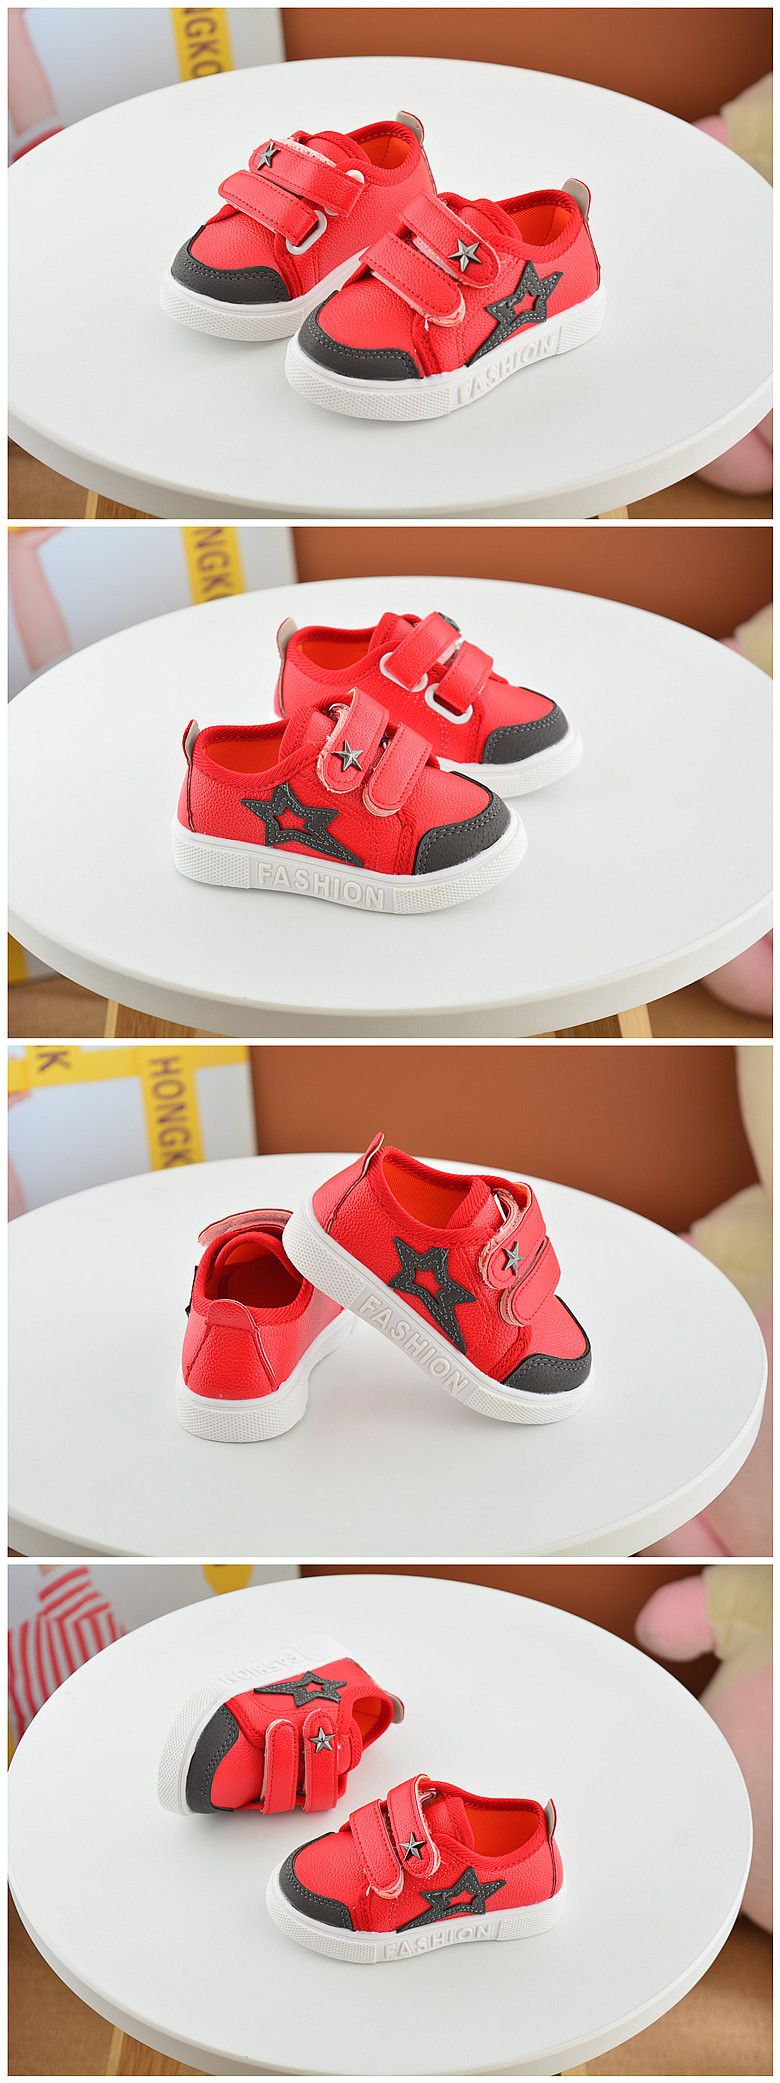 16 New Small Children Canvas Shoes For Kids Baby Boys Canvas Star Shoes Girls Flat Sneakers Low Casual School Students Shoes 4